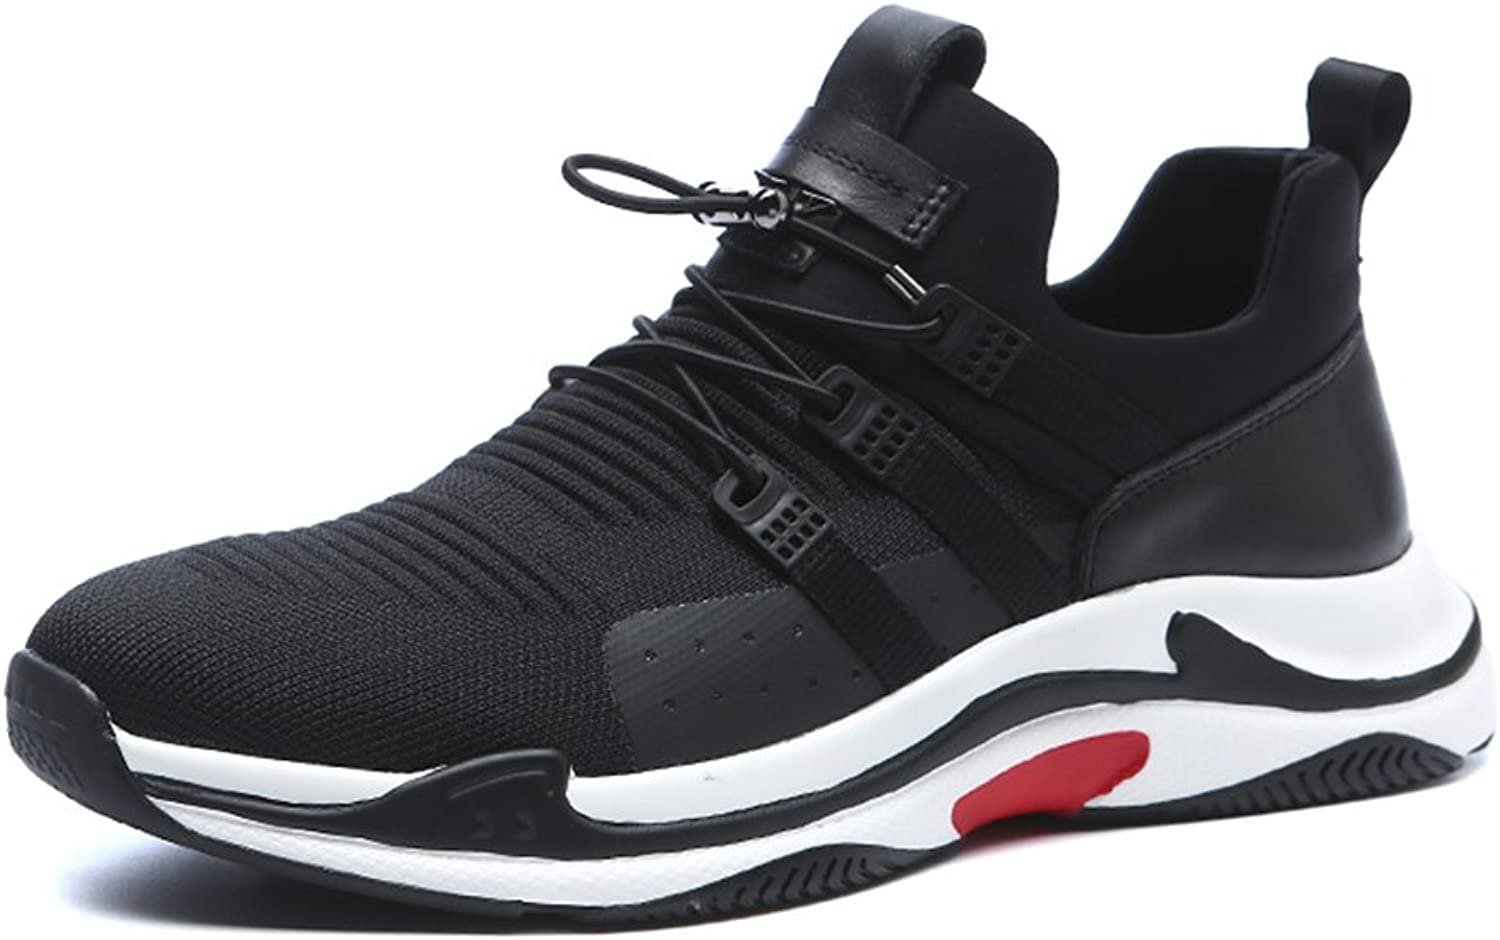 Amazn Men's shoes, Men's shoes Tulle Spring Fall Fashion Boots Sneakers Casual Travel Lace-up for Athletic Casual Running shoes Black,shoes